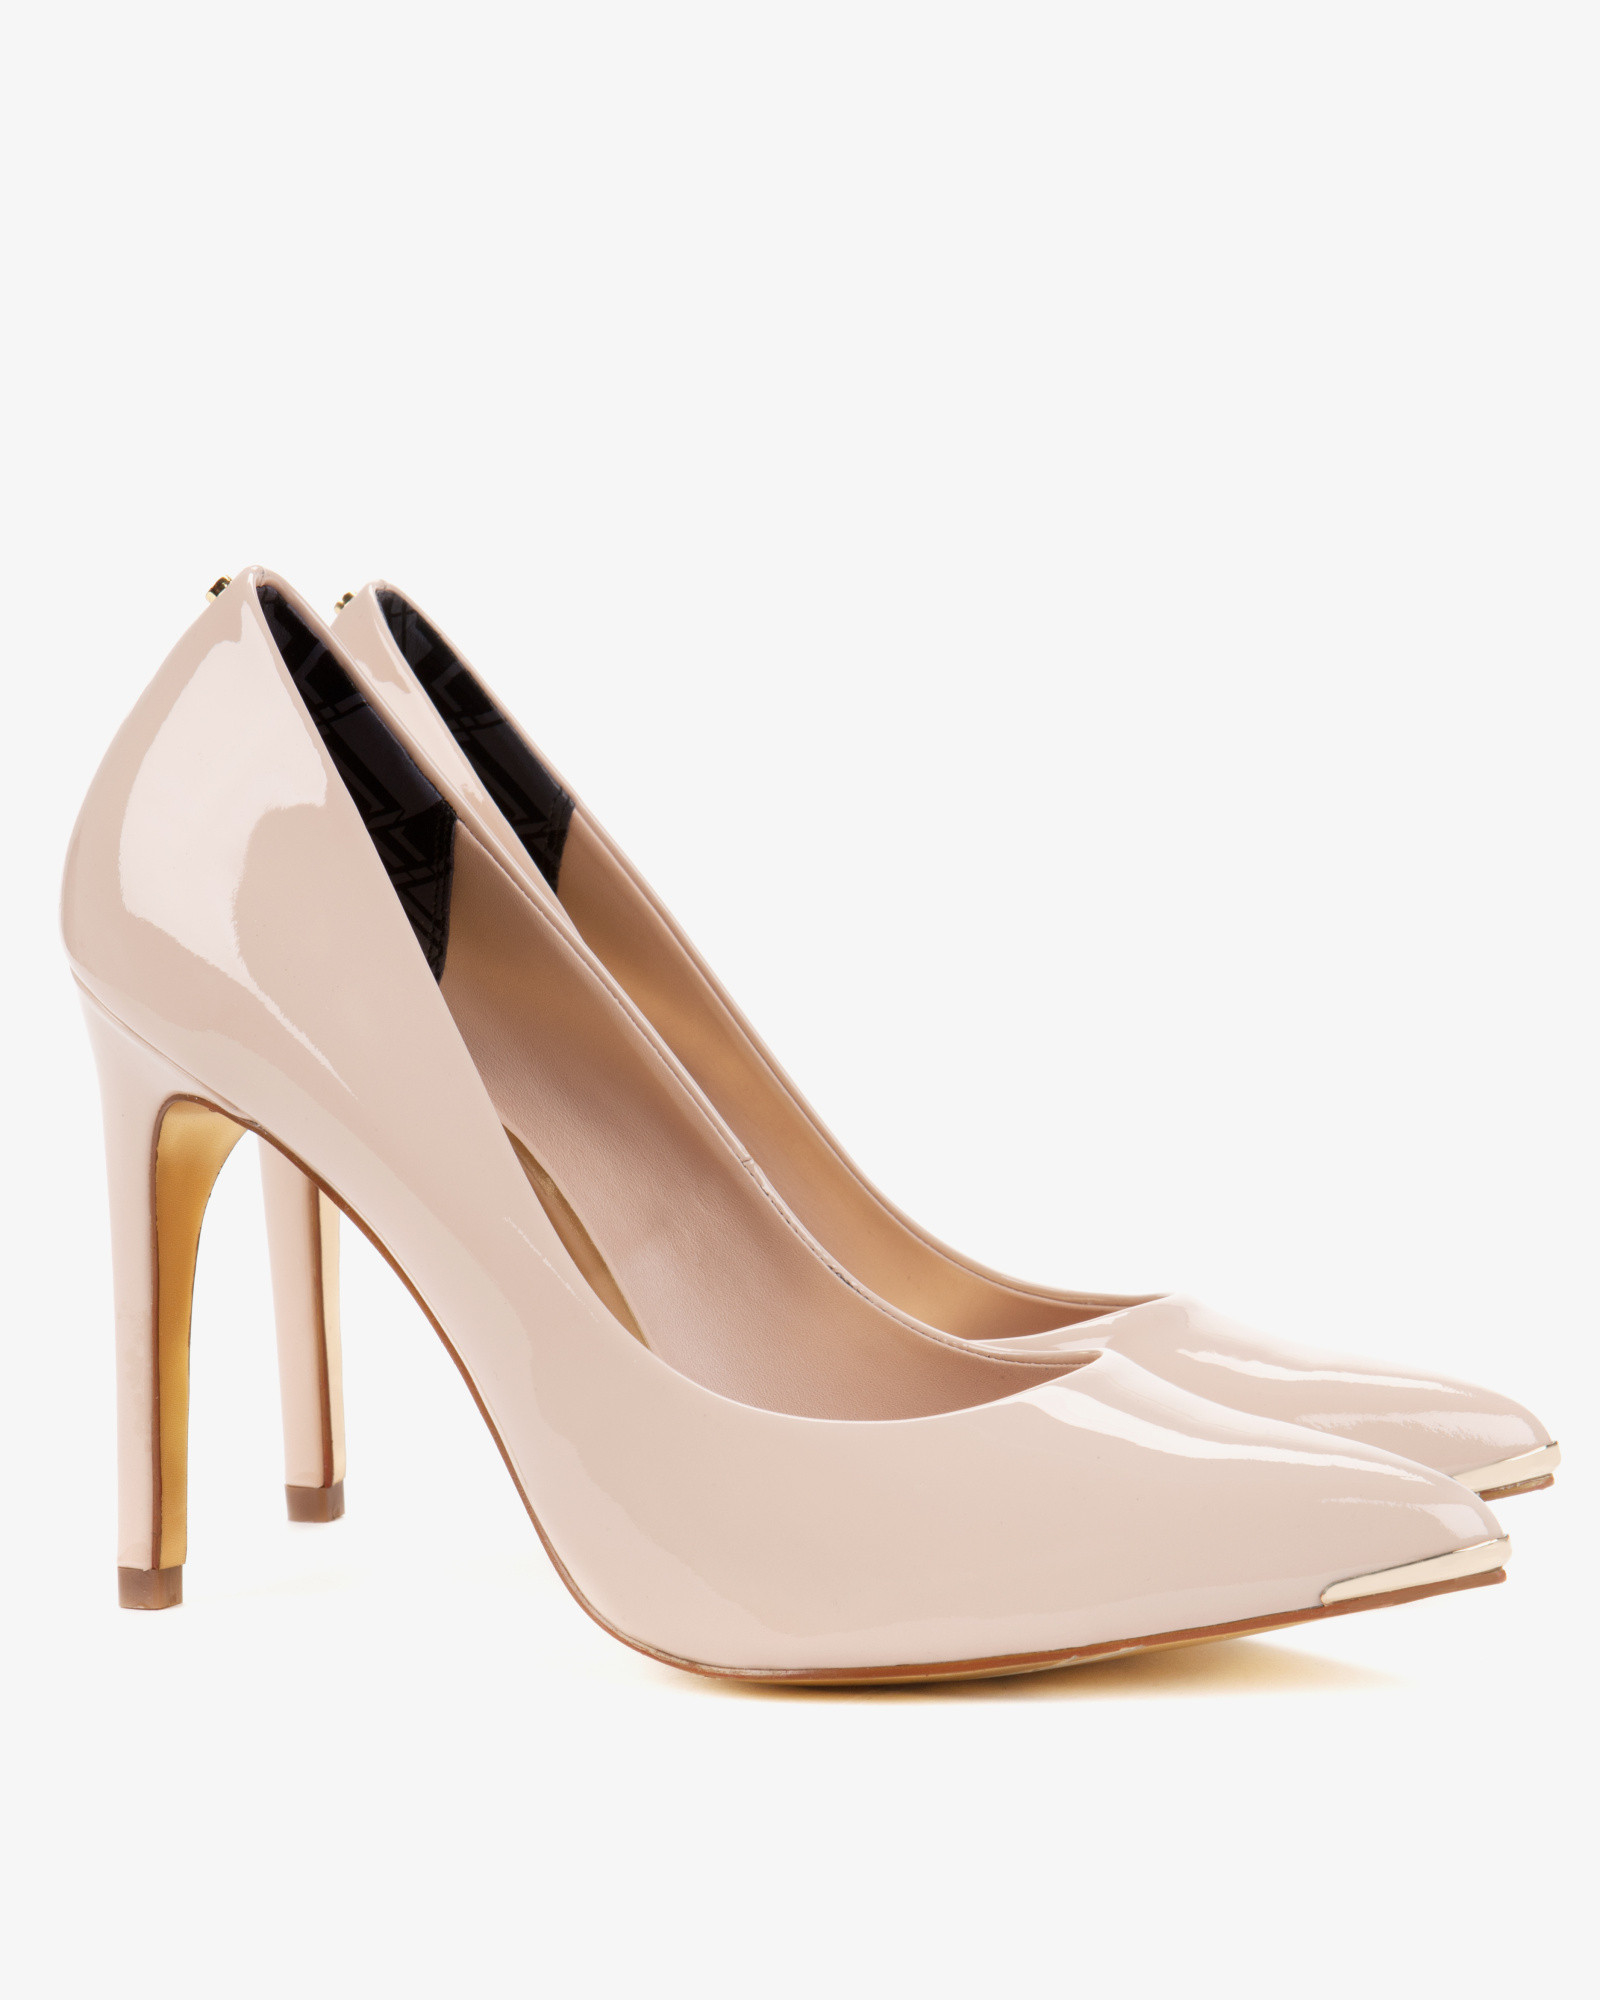 57b80ebf63271 Lyst - Ted Baker Pointed Leather Court Shoes in Natural